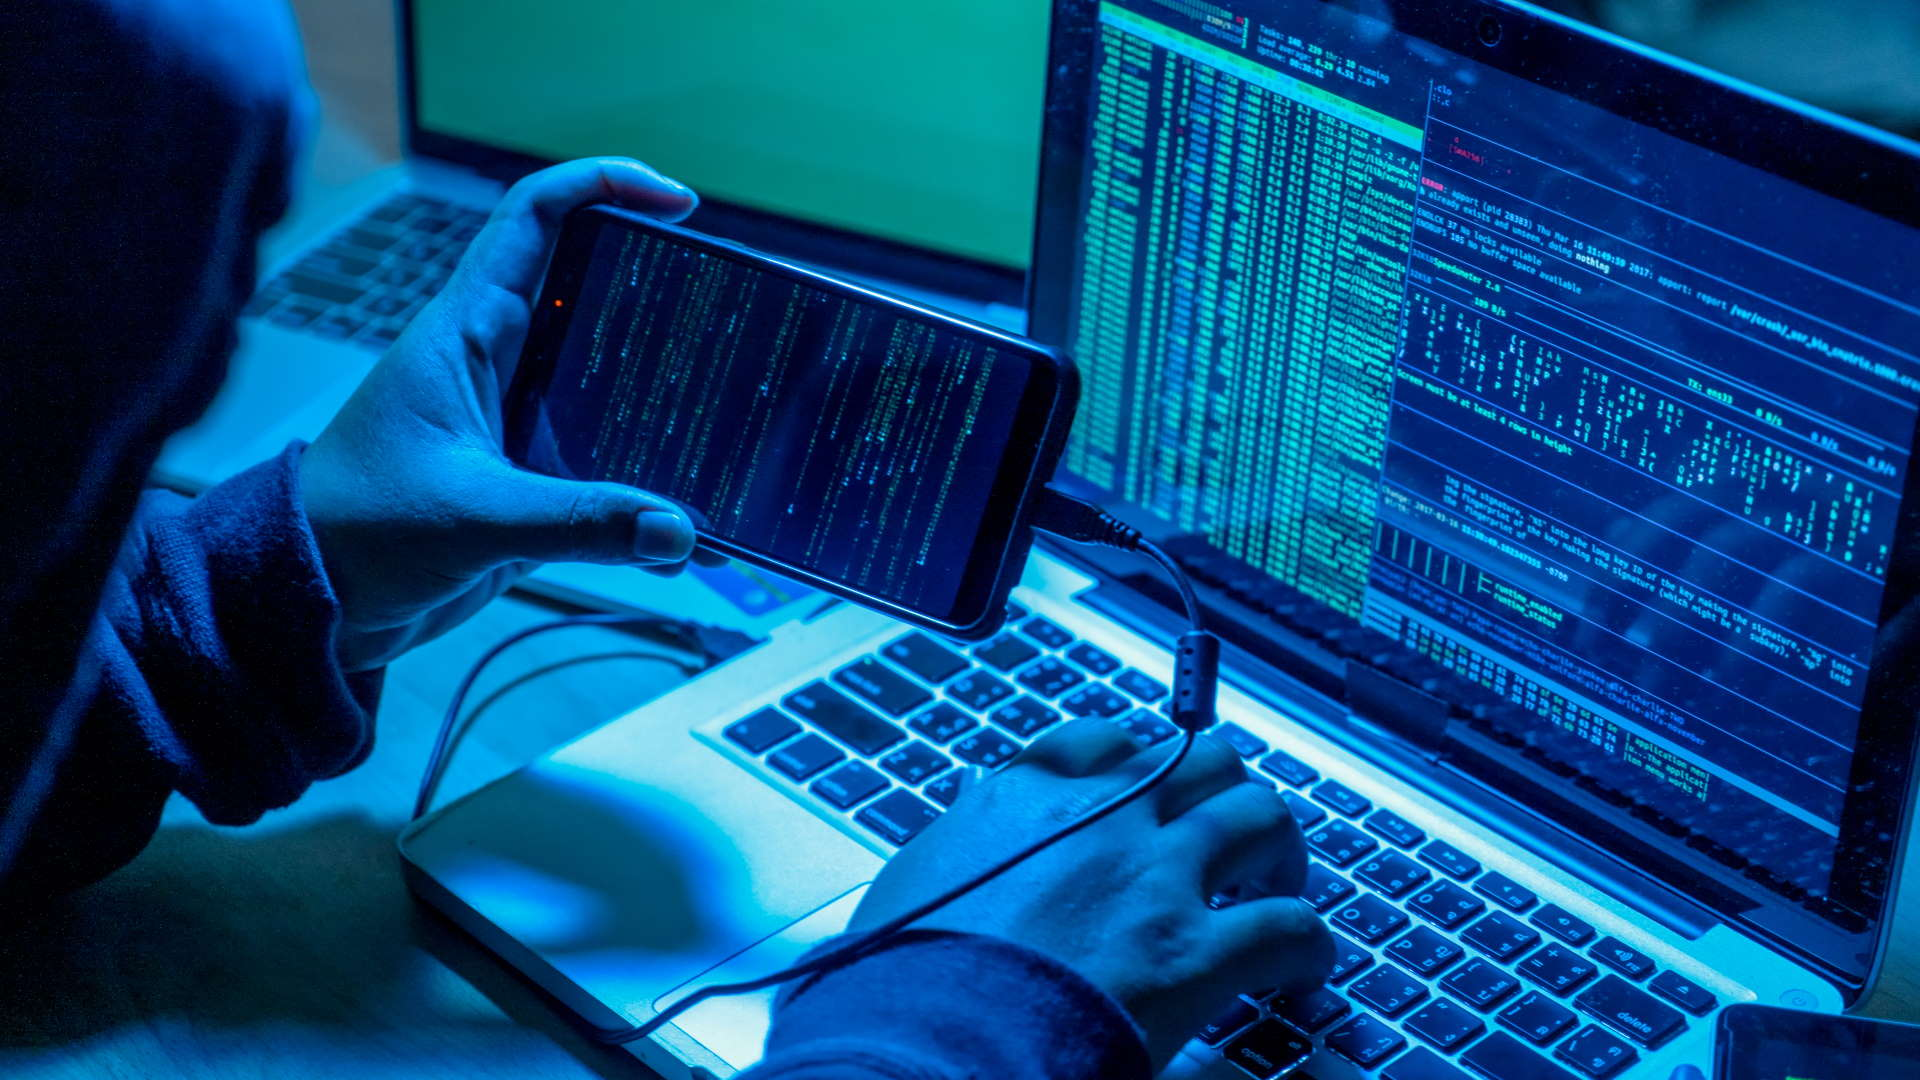 Hackers hack at unhackable new chip for three months. Chip remains unhacked